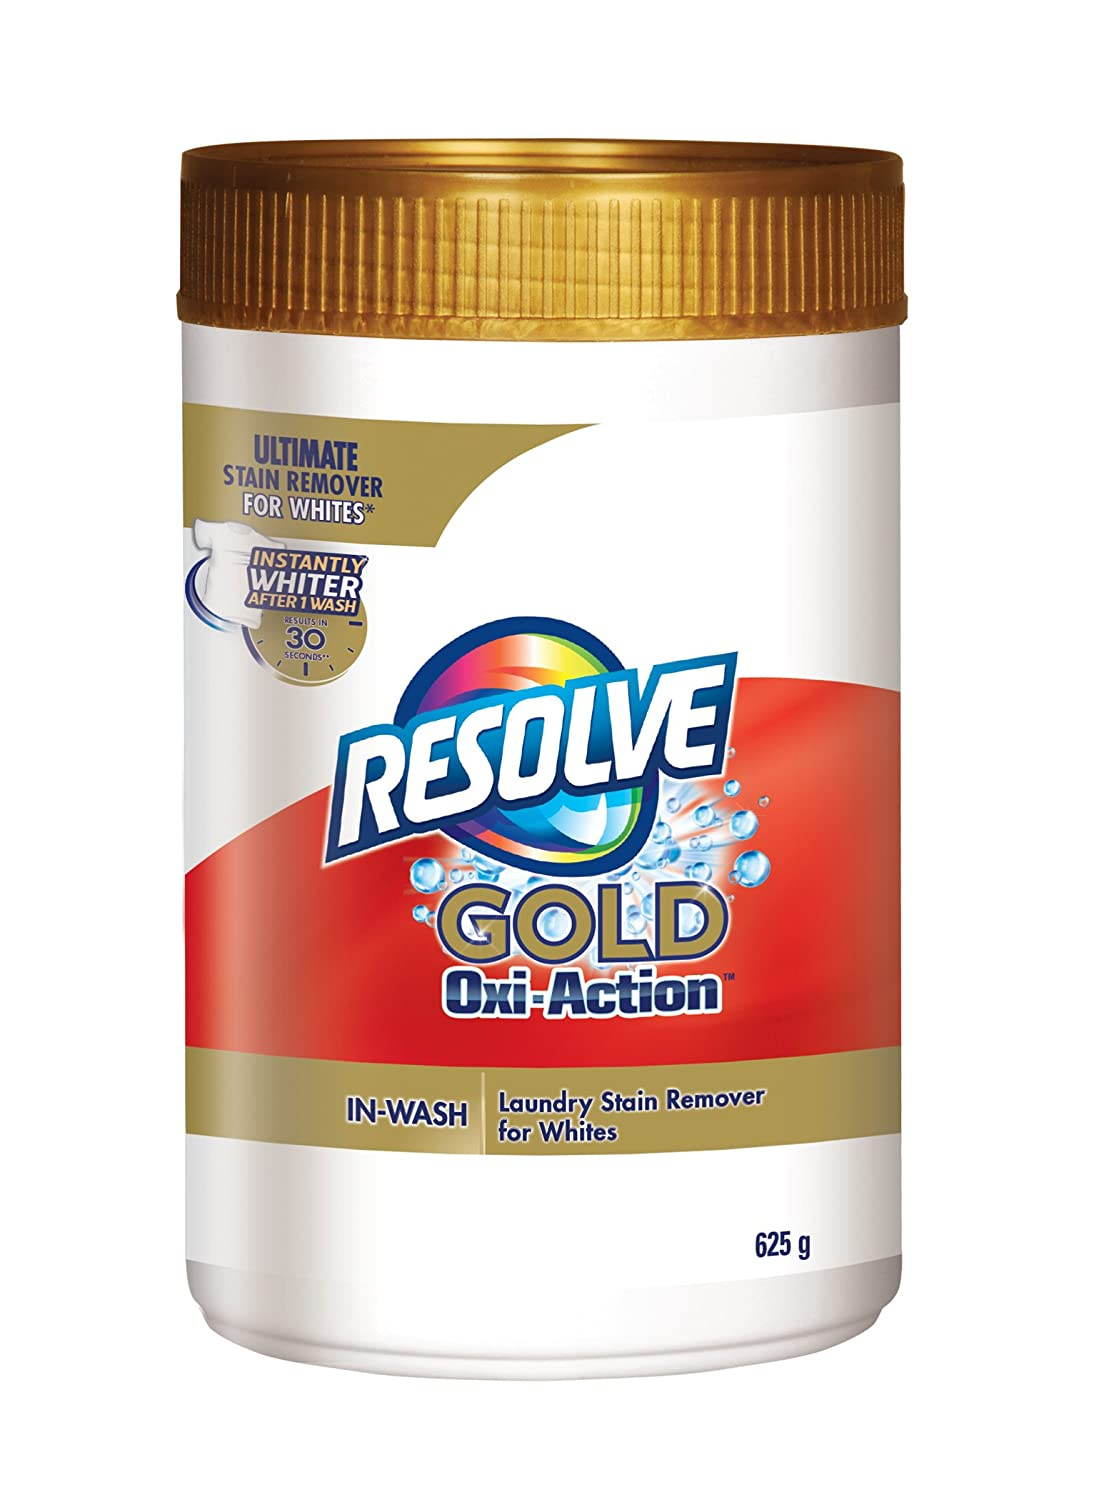 Resolve Gold Oxi Action Ultimate Laundry Stain Remover In Wash Avan Av 801 Headset Headphone Powder Whites 625 G Health Personal Care